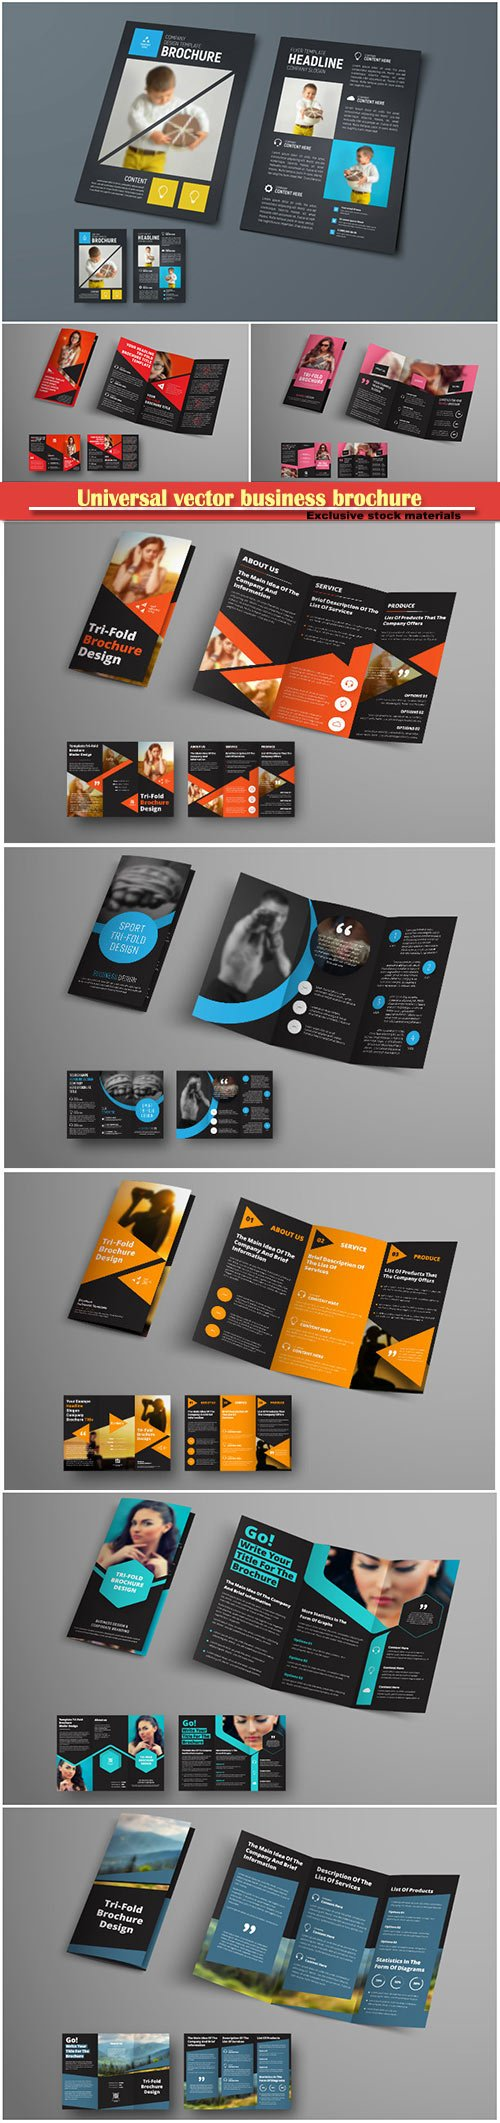 Template of a universal vector business brochure with square and triangular elements and a place for a photo